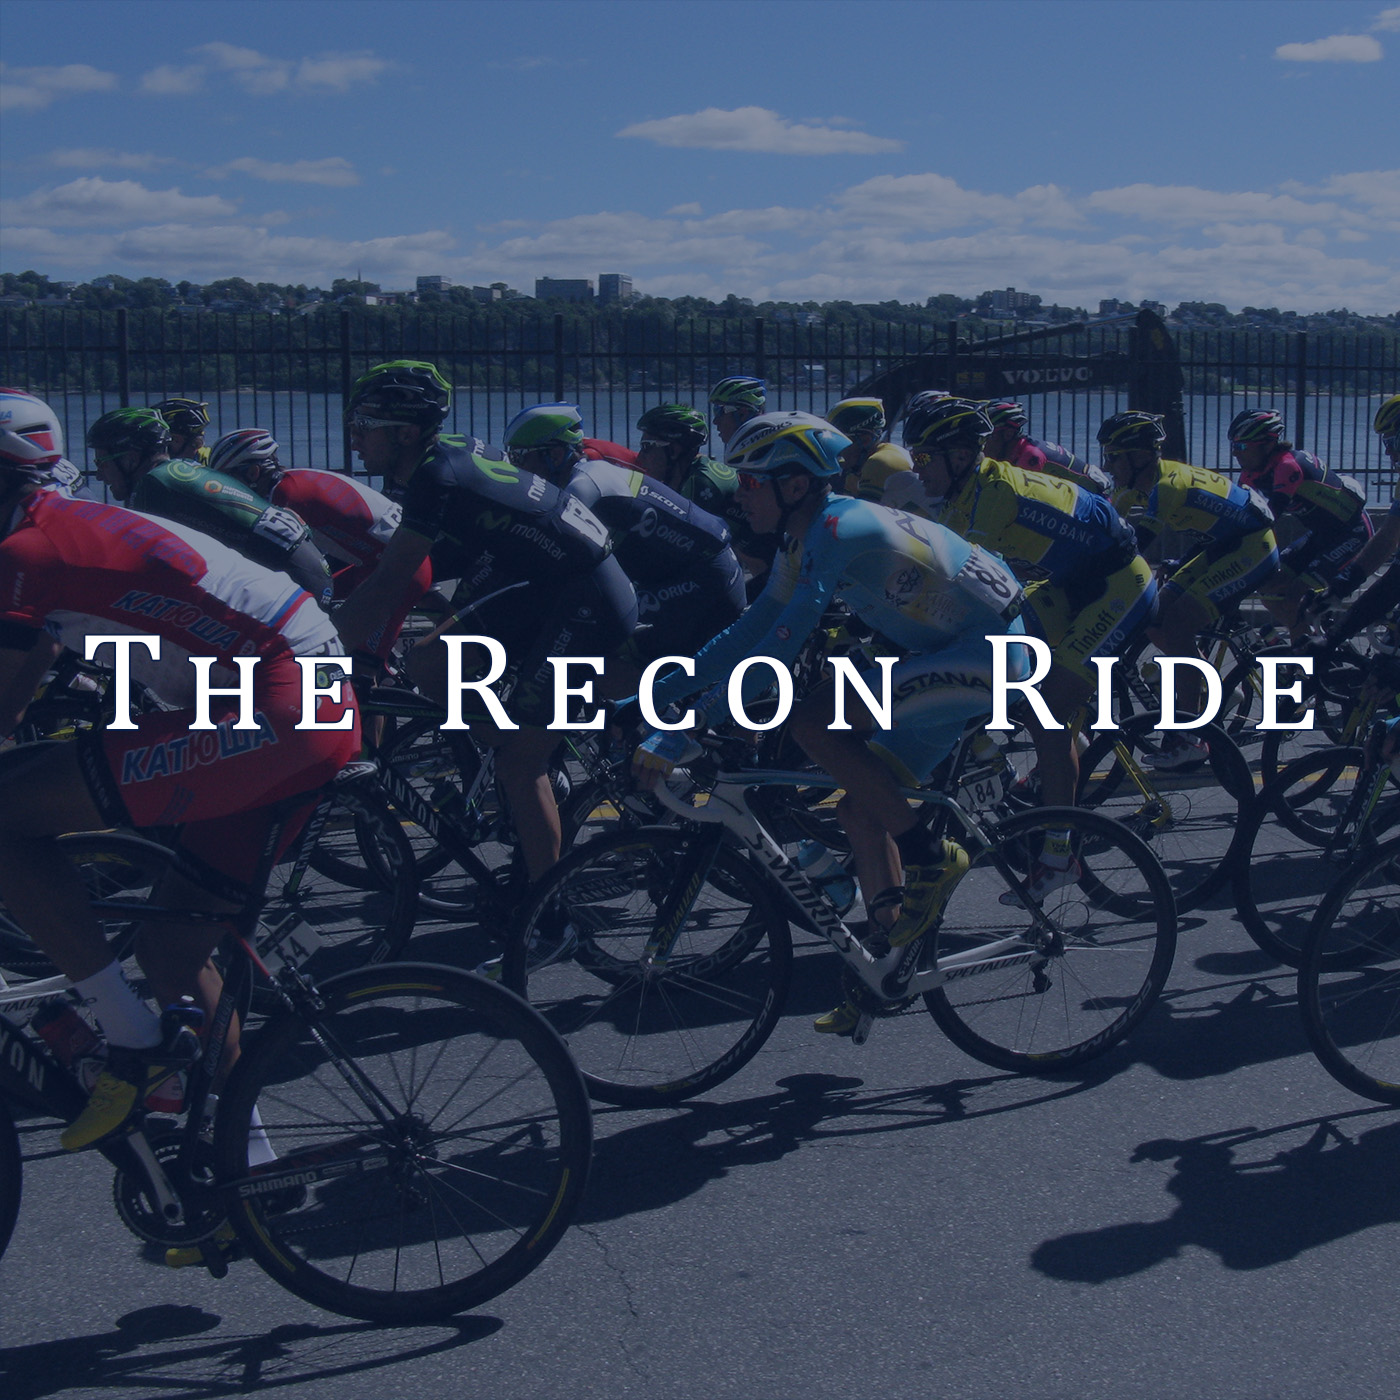 The Recon Ride